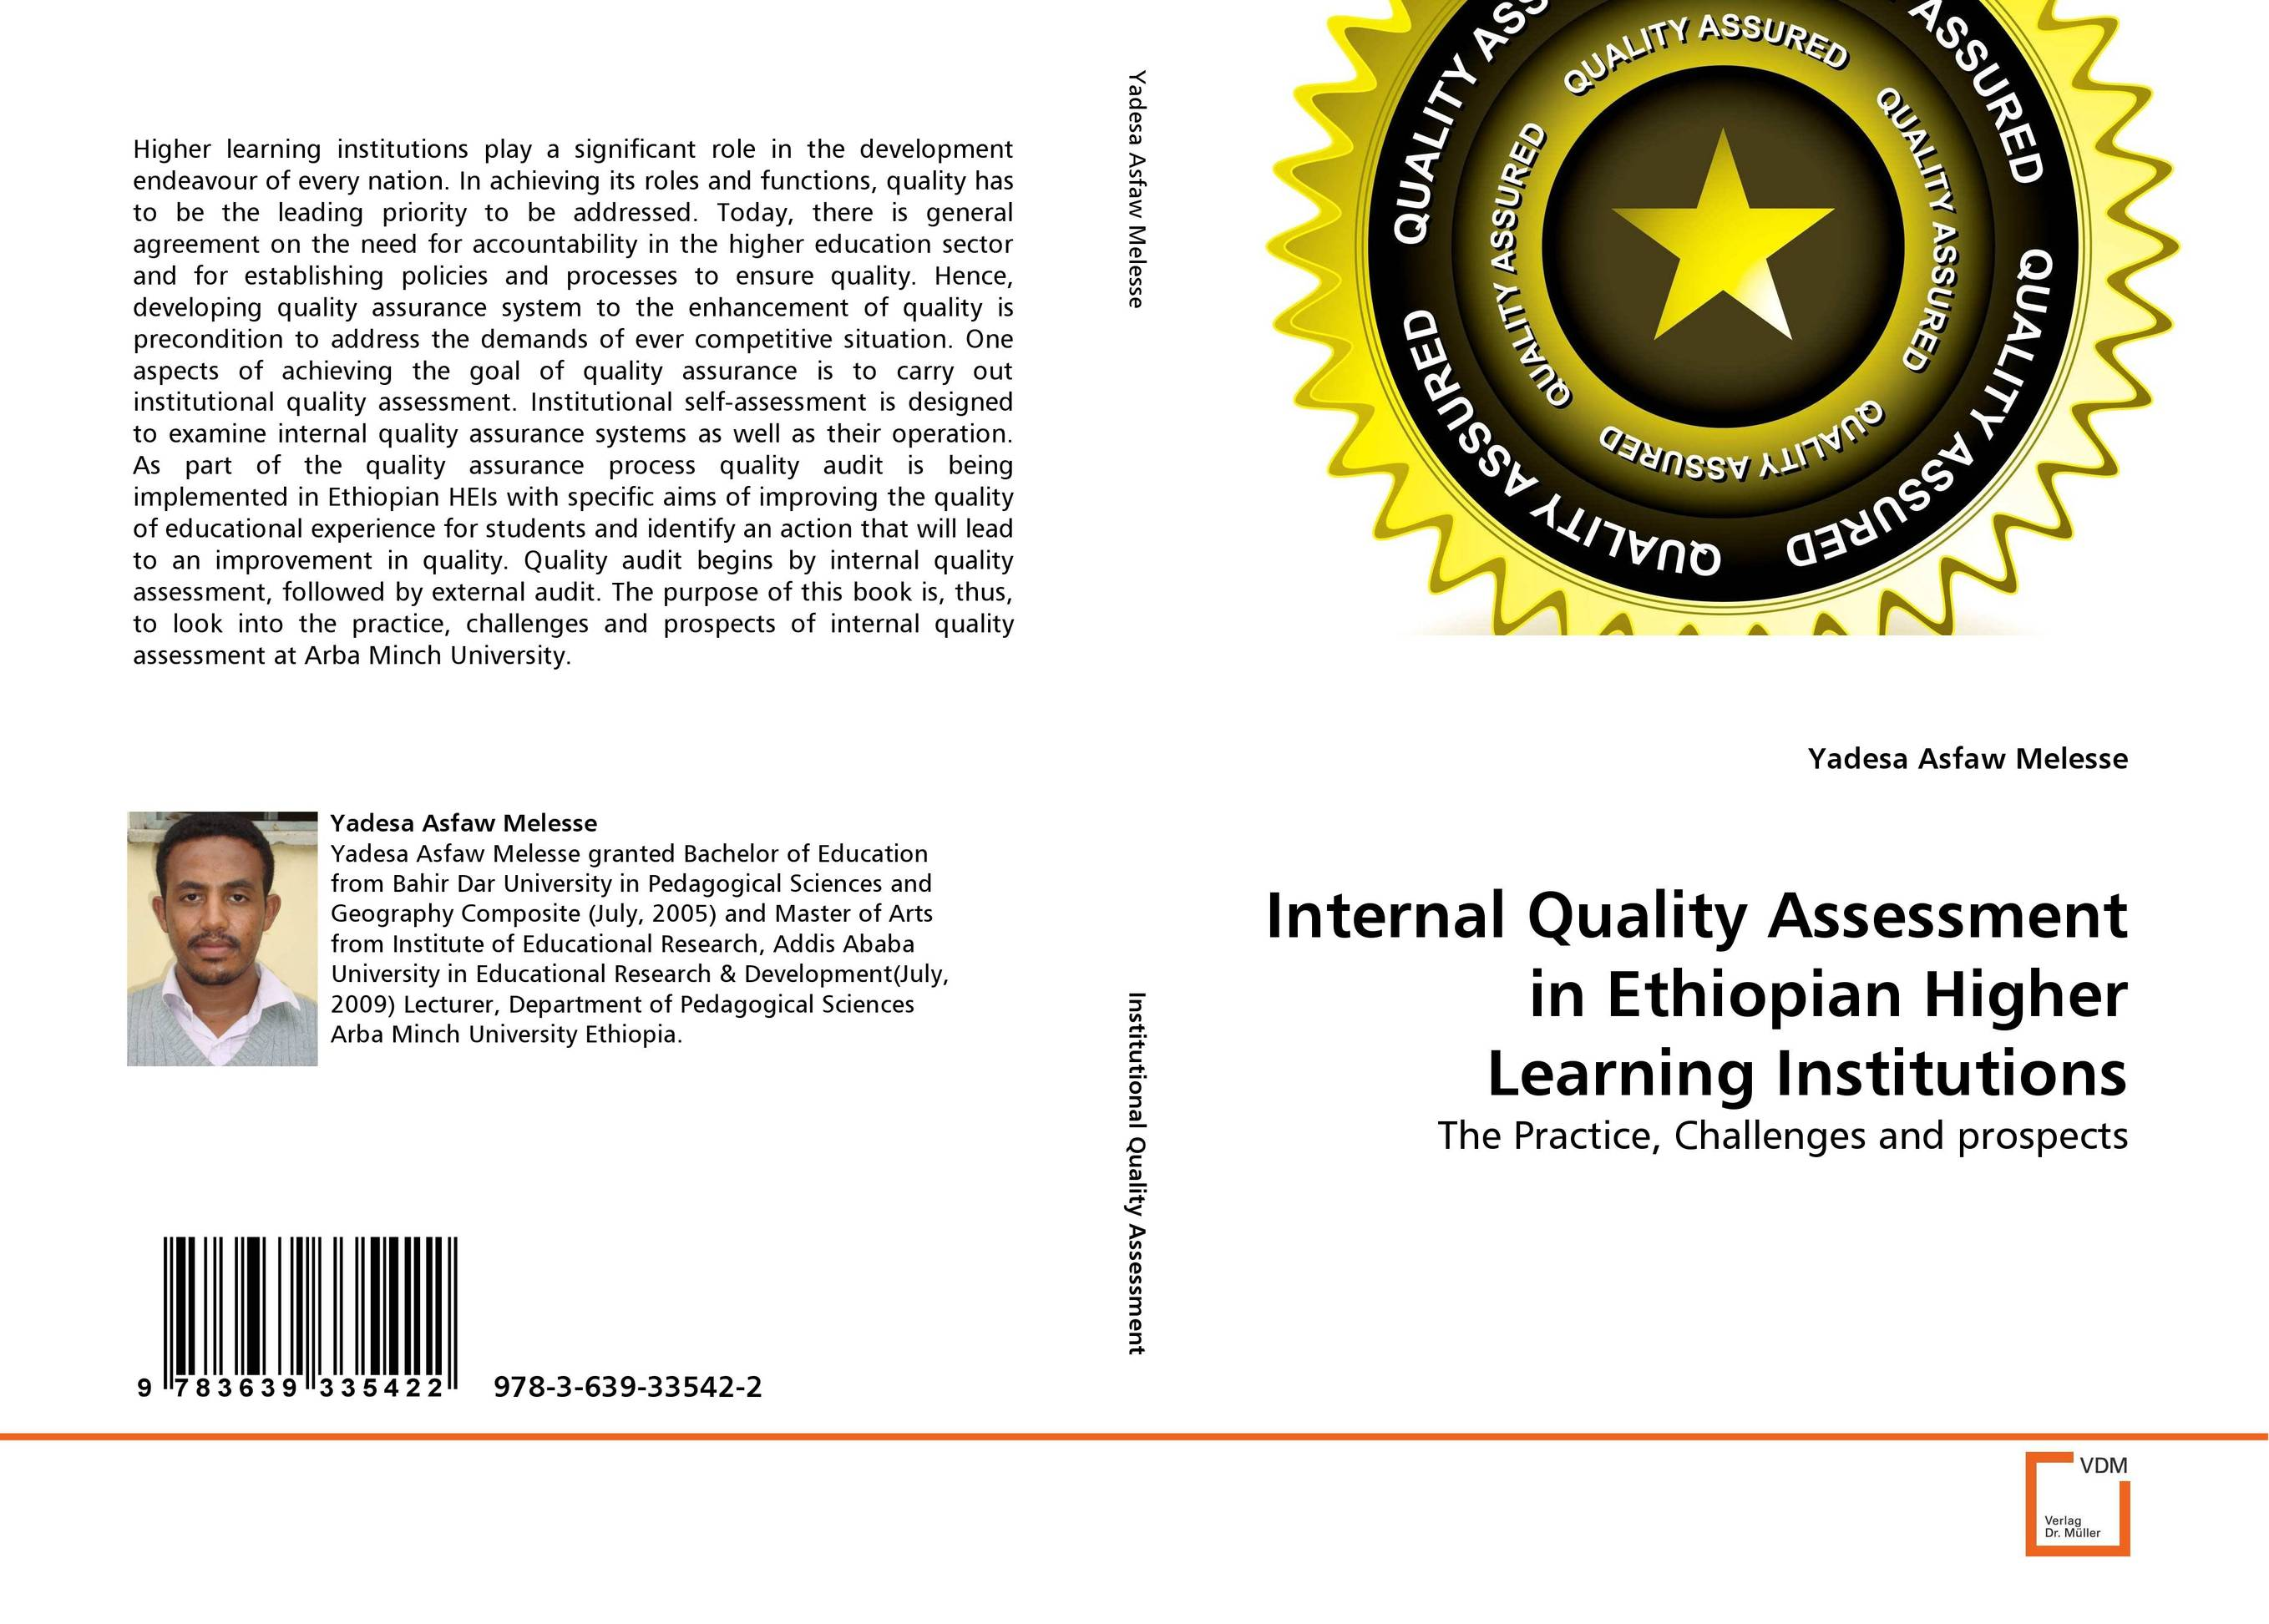 Internal Quality Assessment in Ethiopian Higher Learning Institutions quality assurance in textbook development